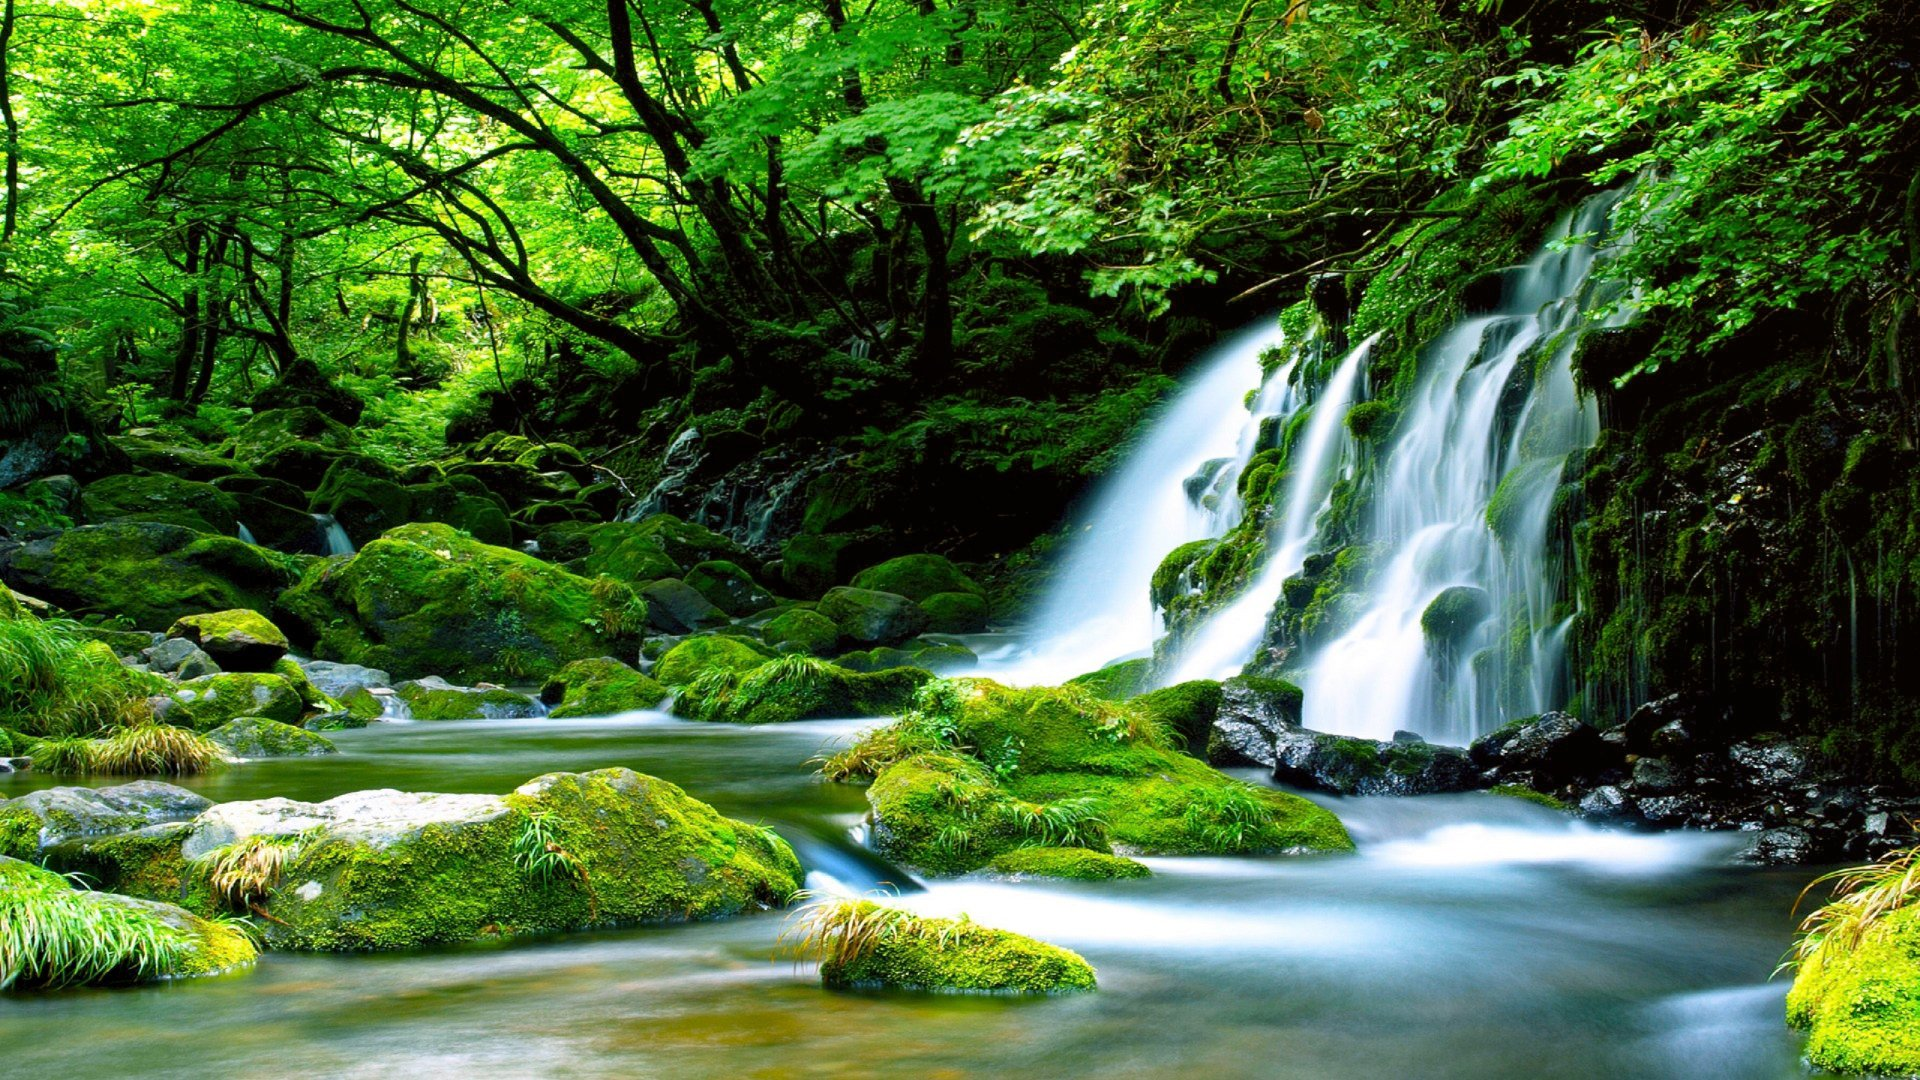 1920x1080 Hd Wallpapers Waterfall: Waterfall In Forest HD Wallpaper